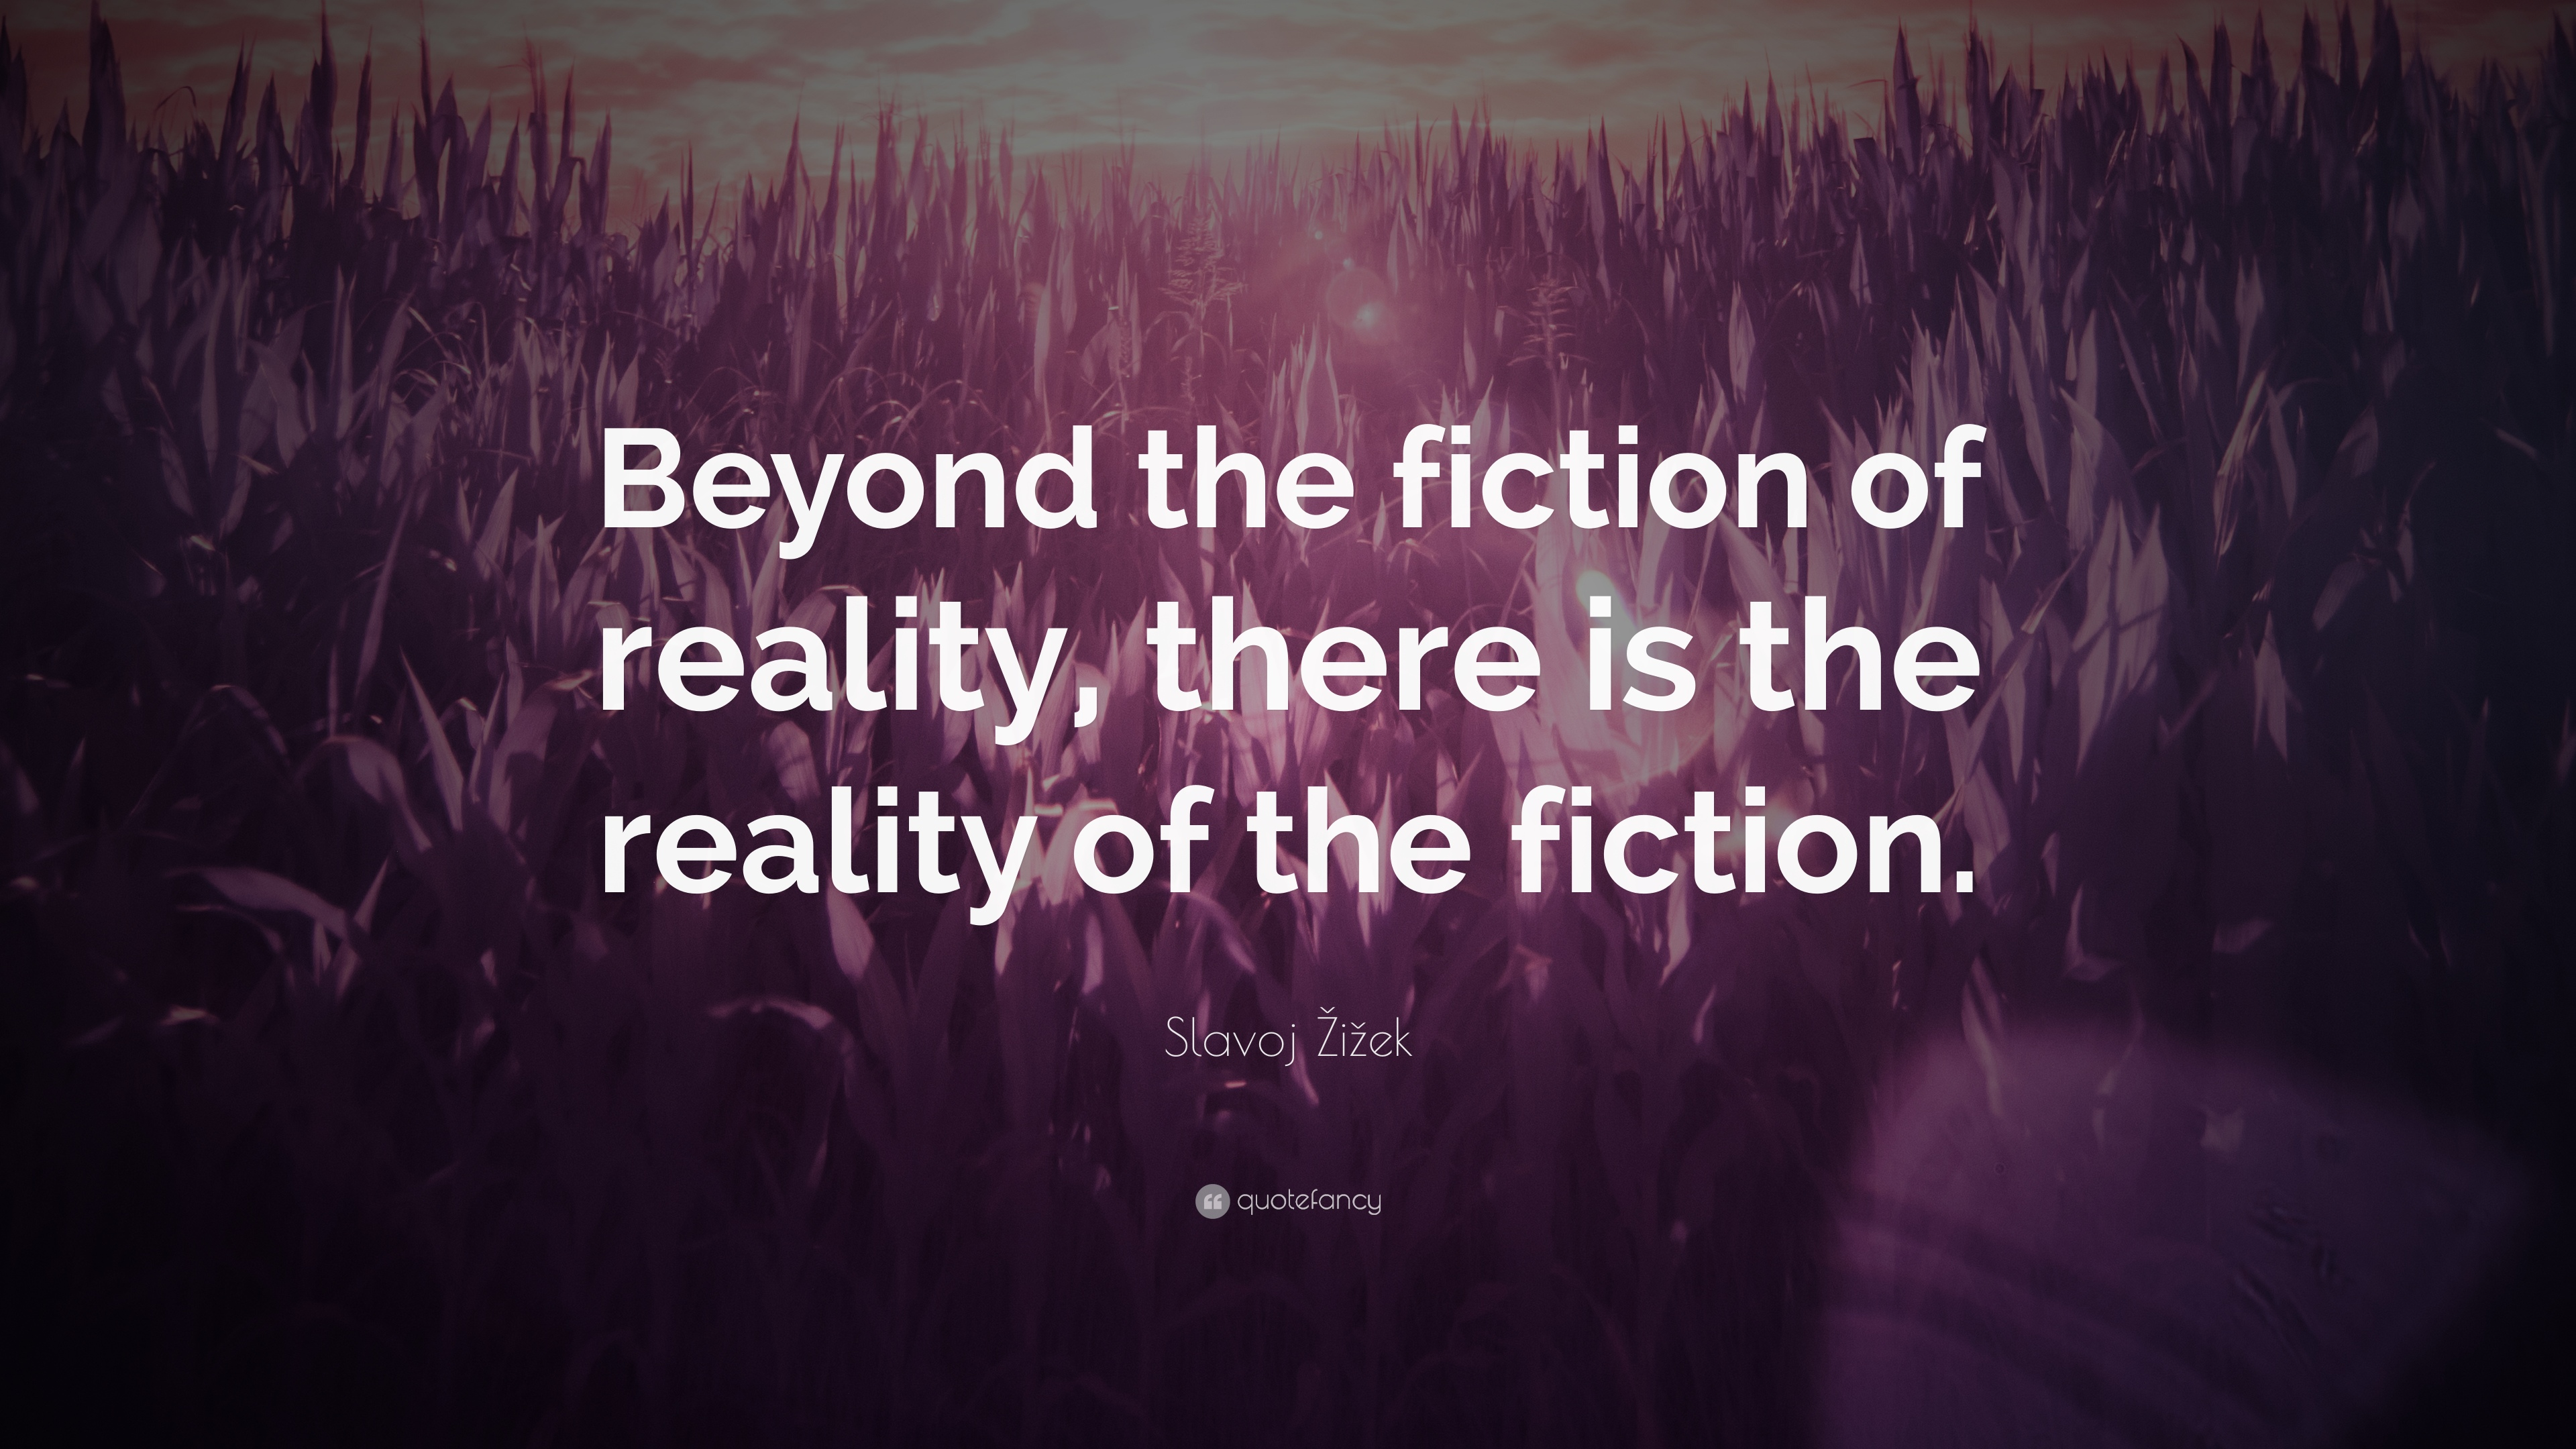 Slavoj Žižek 1186941-Slavoj-i-ek-Quote-Beyond-the-fiction-of-reality-there-is-the